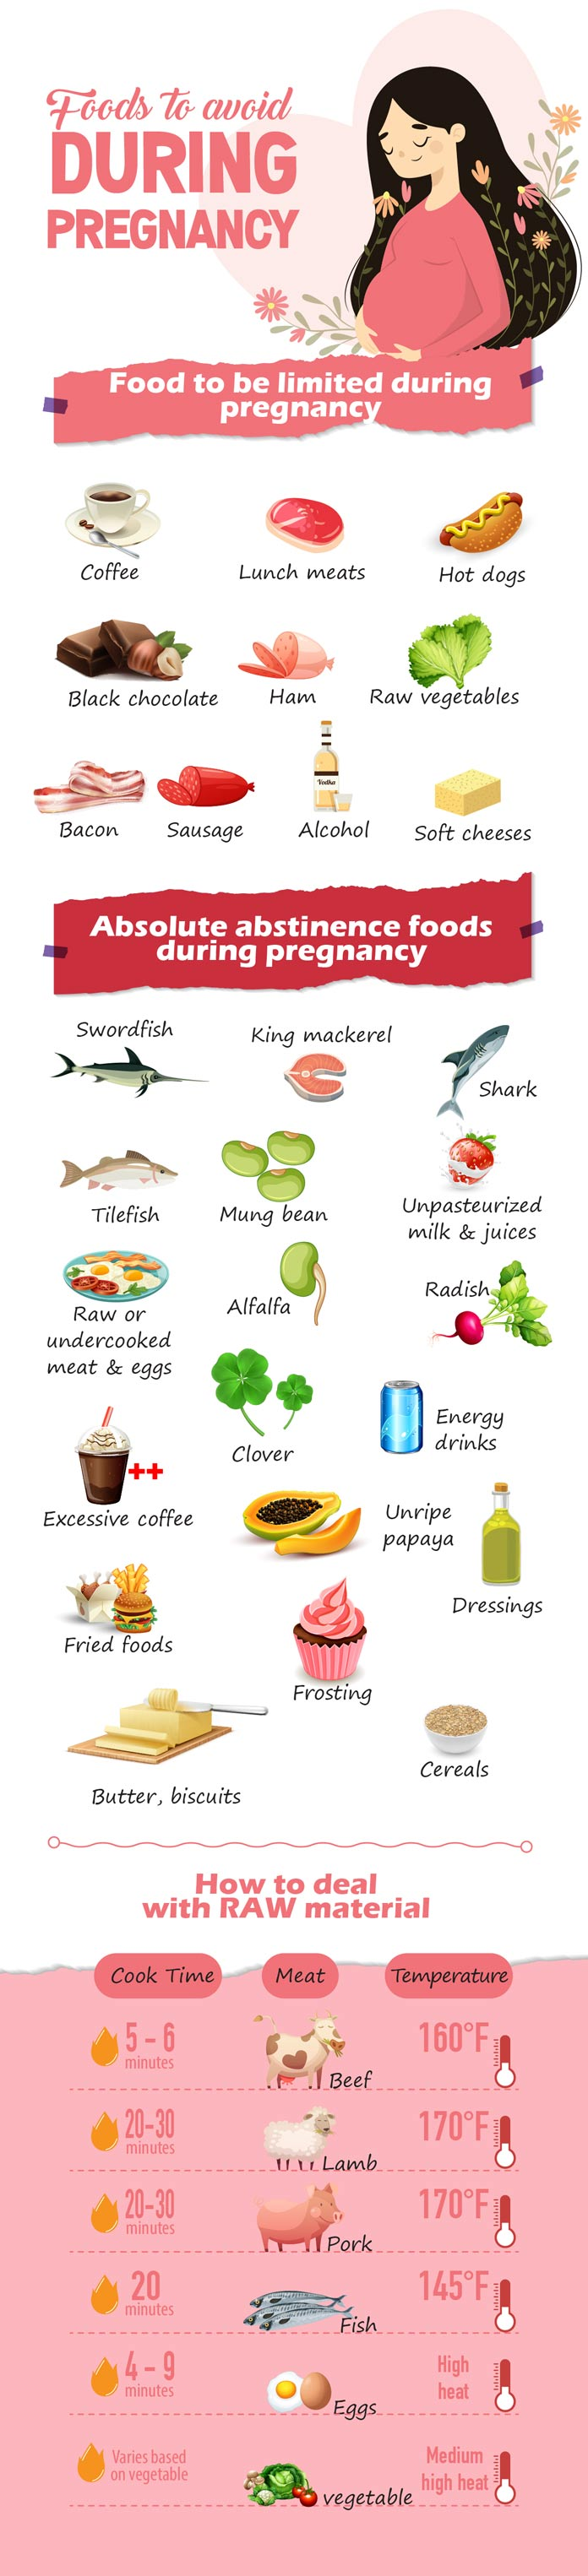 Foods to Avoid During Pregnancy 4